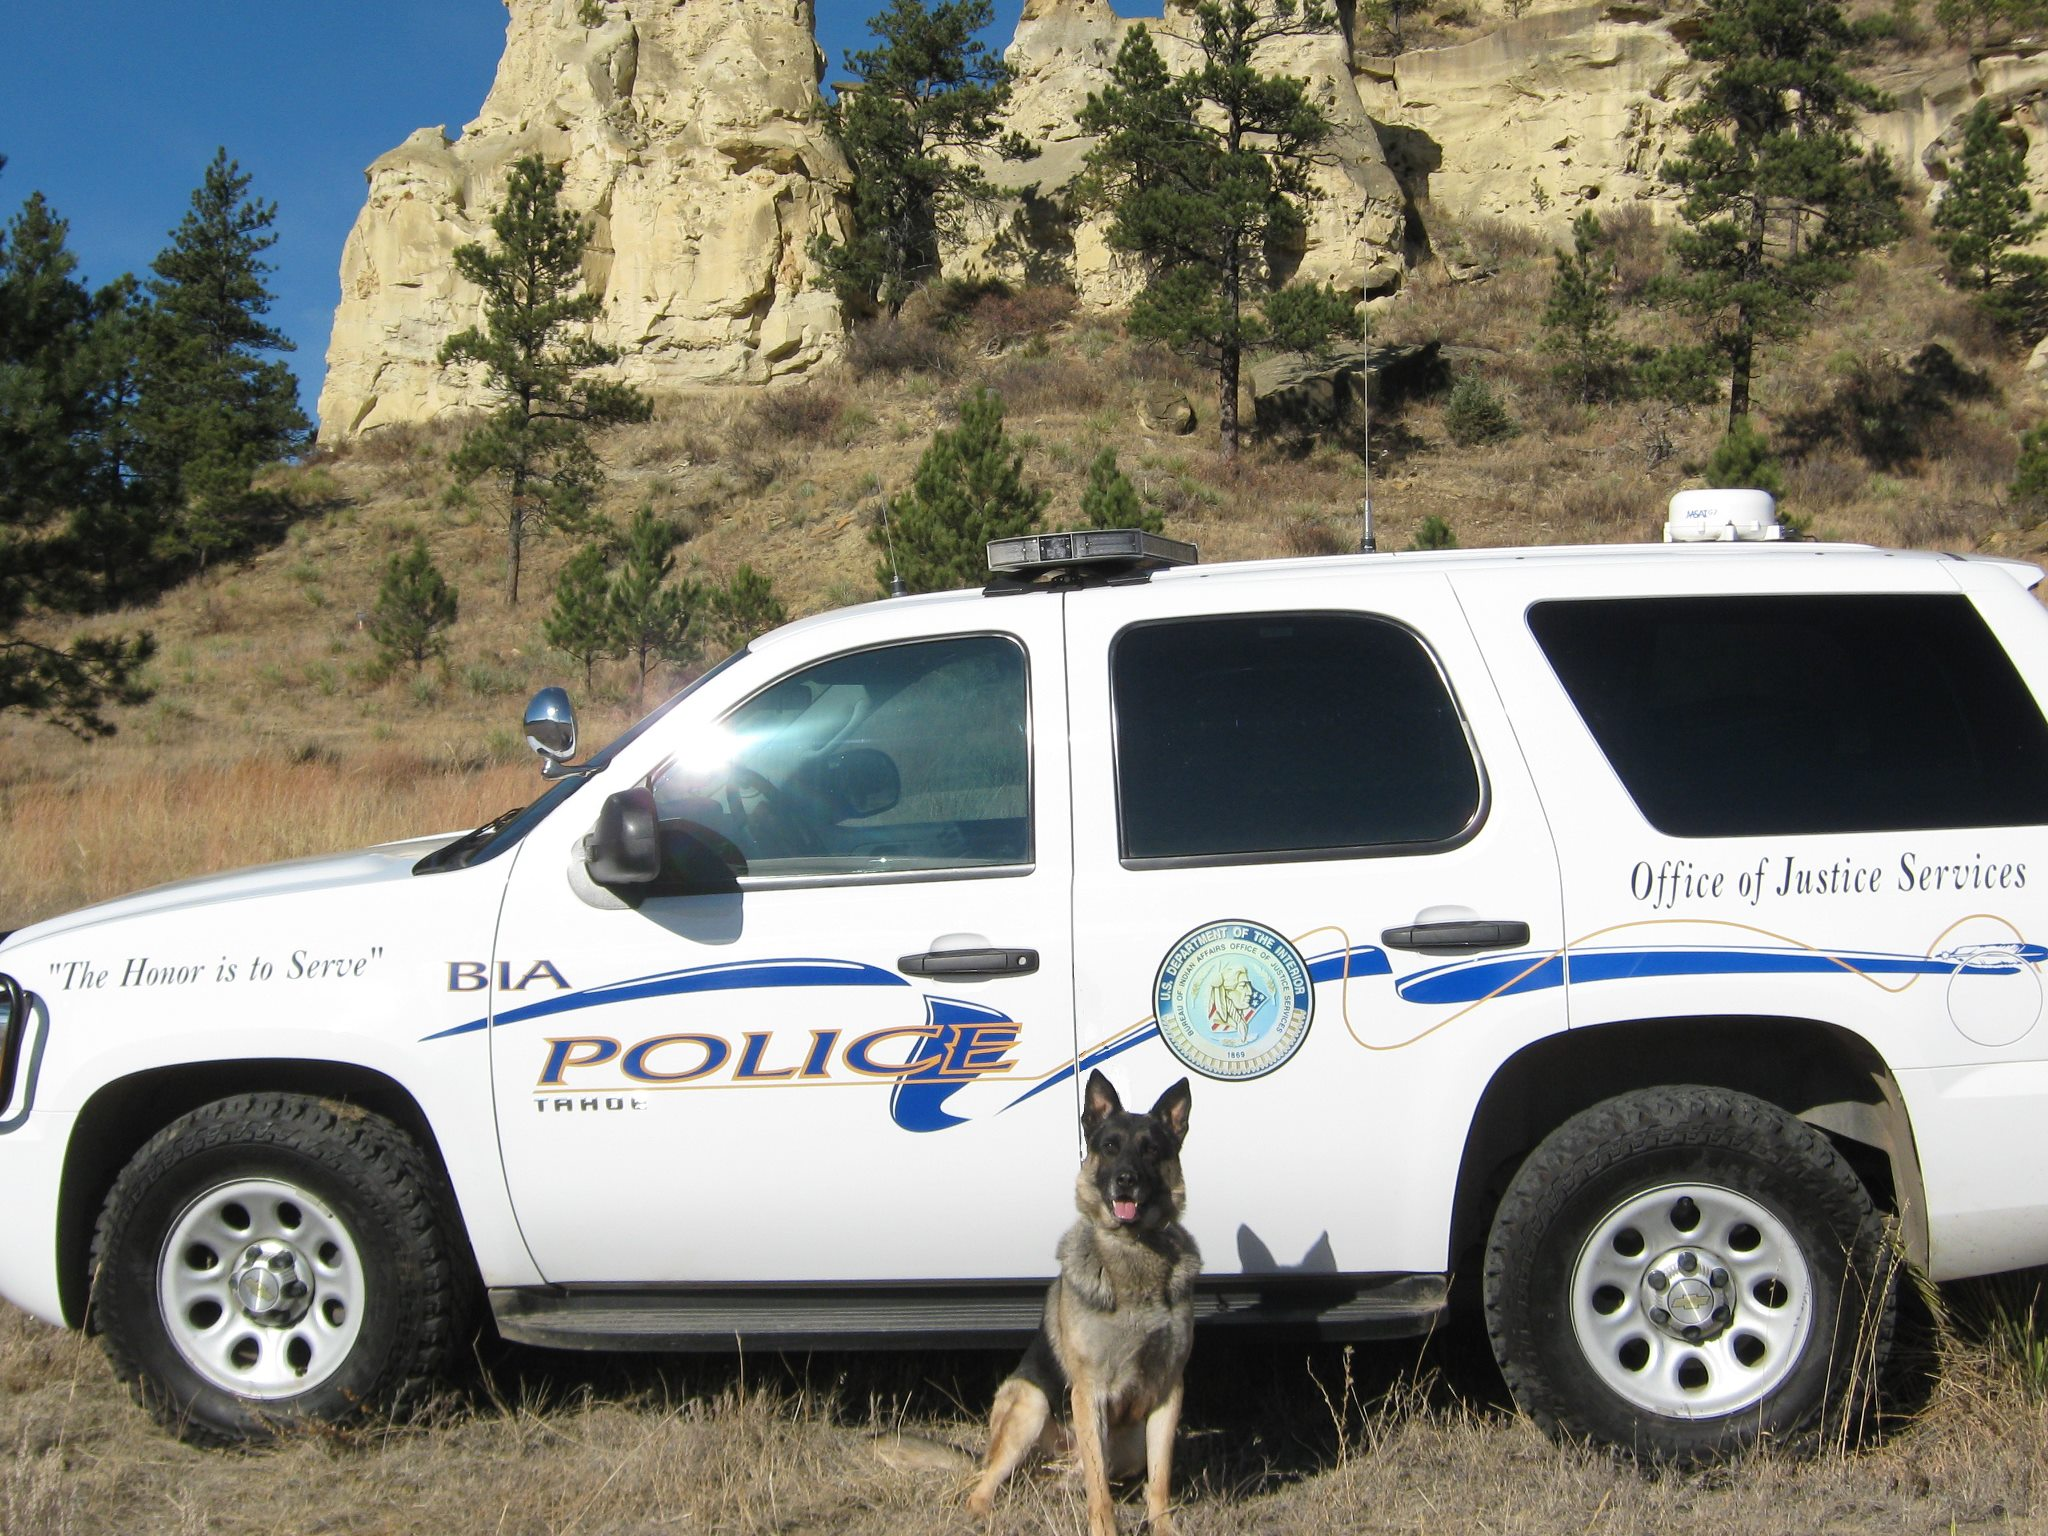 Bureau of Indian Affairs officers can't be sued for arresting non-Indian in Montana